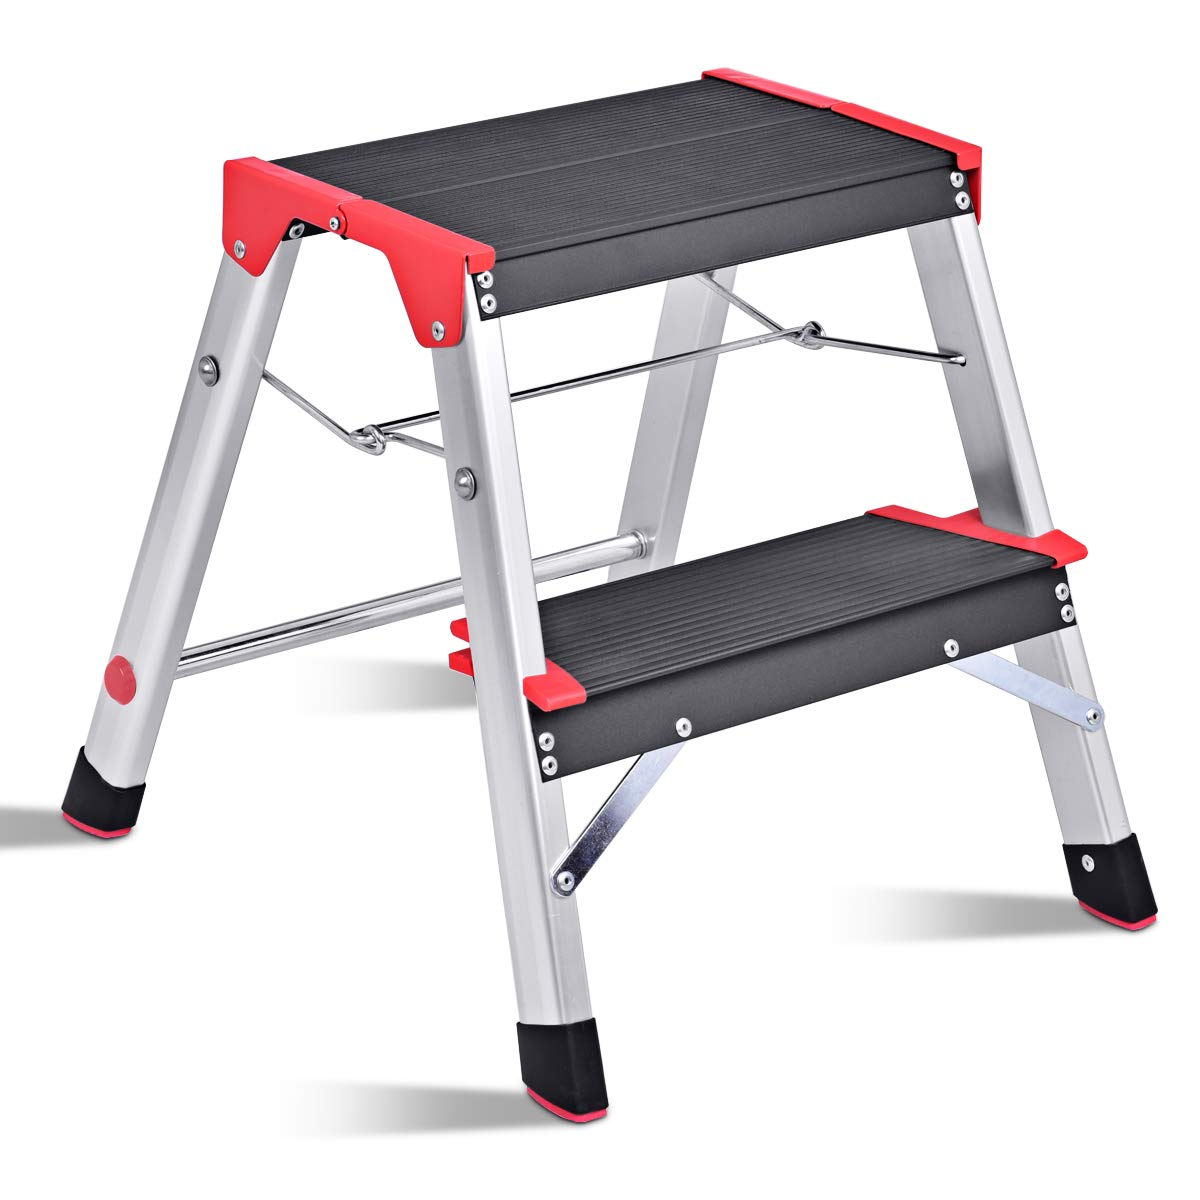 Giantex Aluminum 2 Step Ladder Folding Non-Slip Lightweight 330lbs Capacity Platform Stool Folding Stepladder Step Stool with Non-Slip Pedal and Wide Pedal for Household Work Use